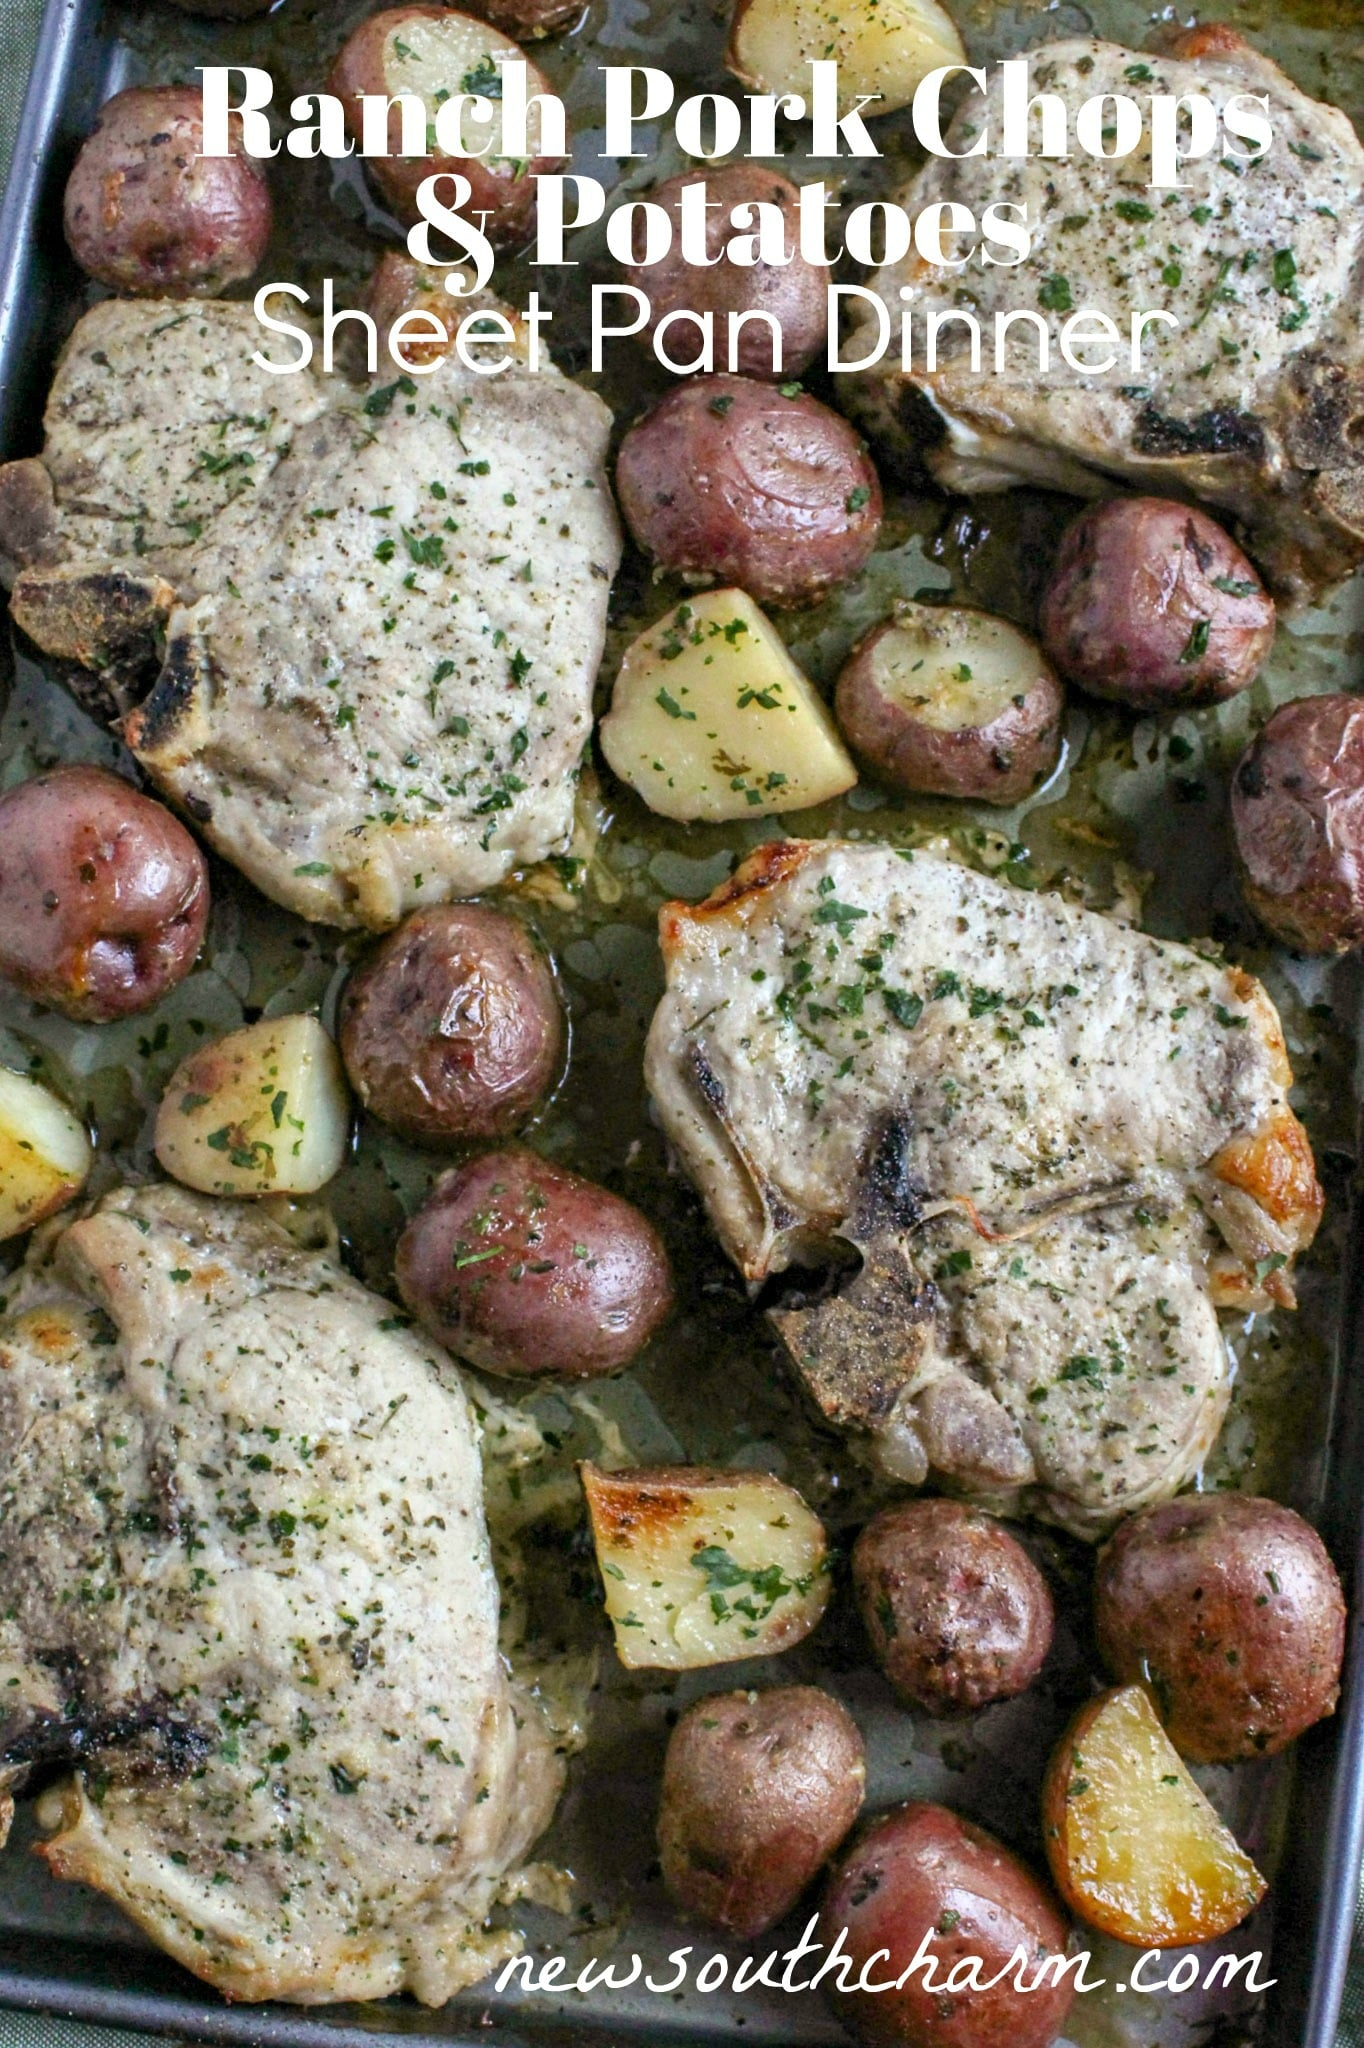 Ranch Pork Chops and Potatoes Sheet Pan Dinner is easy to make and a easy to clean up! A delicious family friendly dinner in just 30 minutes in one pan!